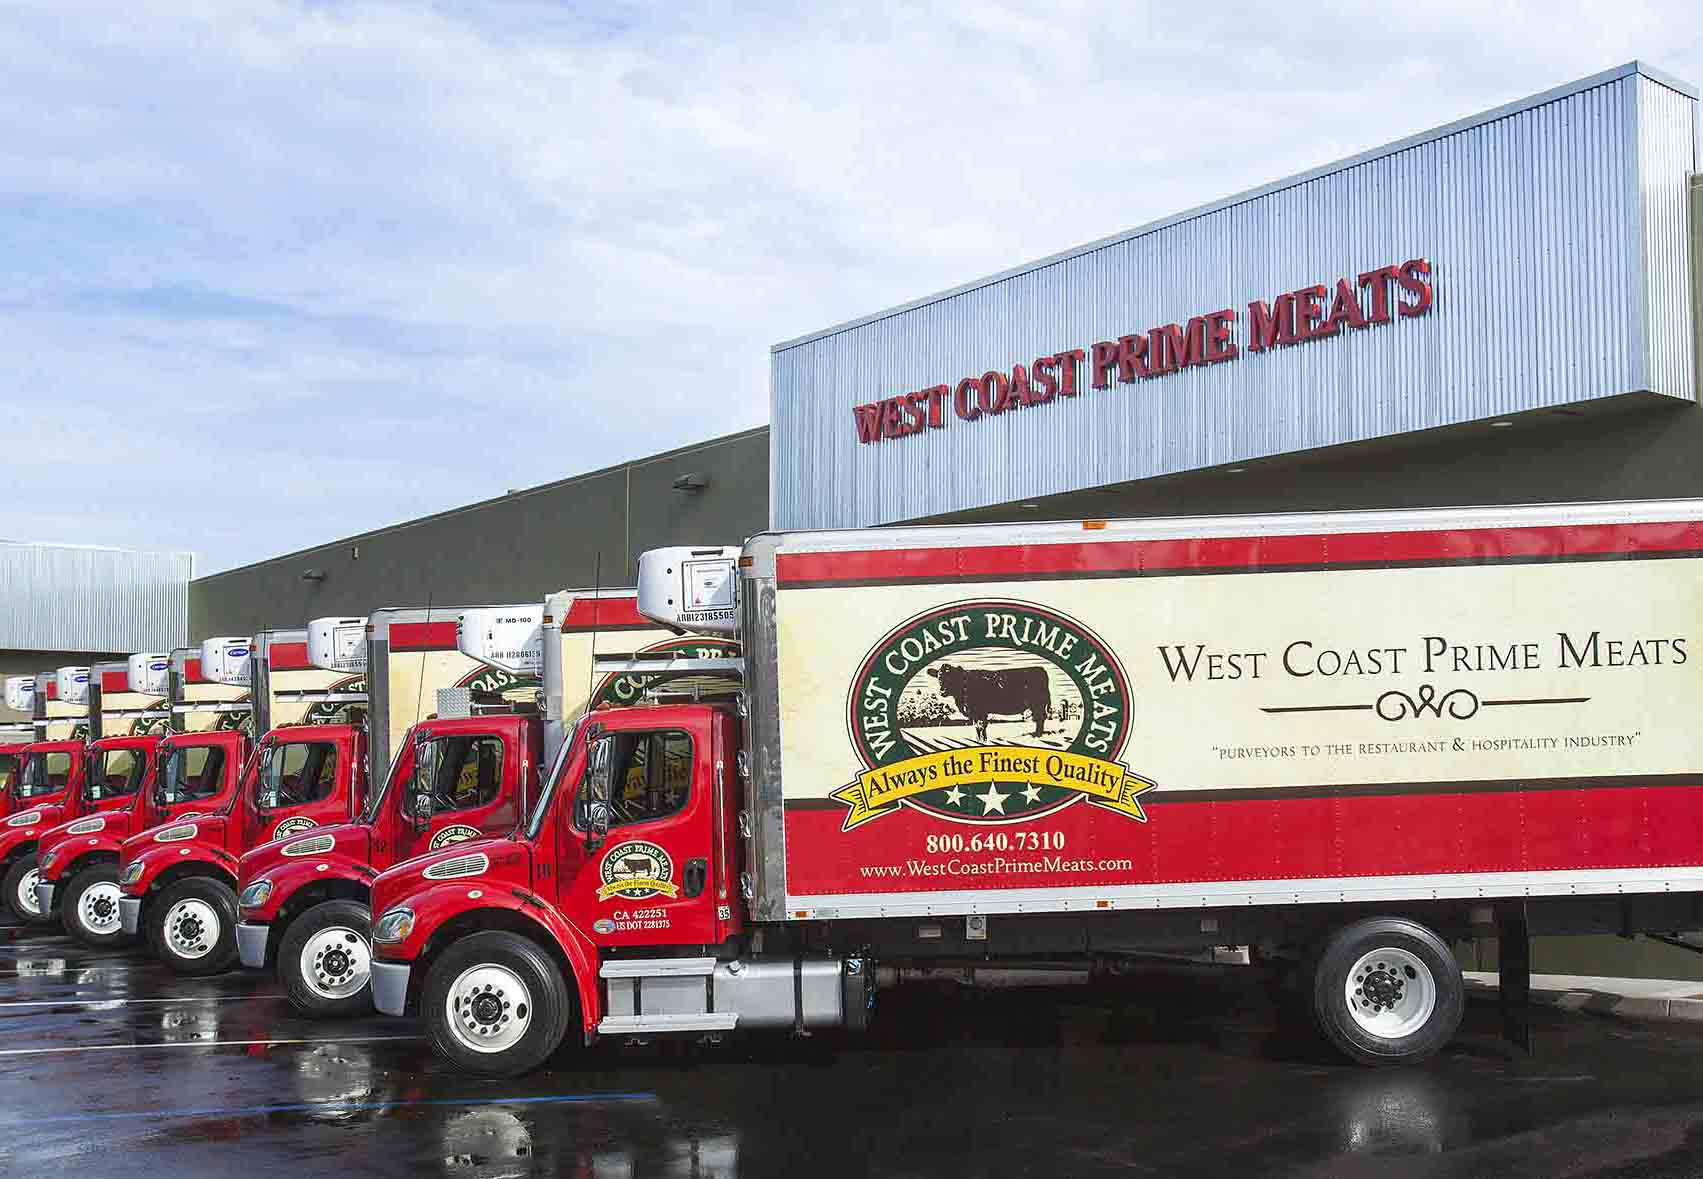 Meat Company Distribution Fleet